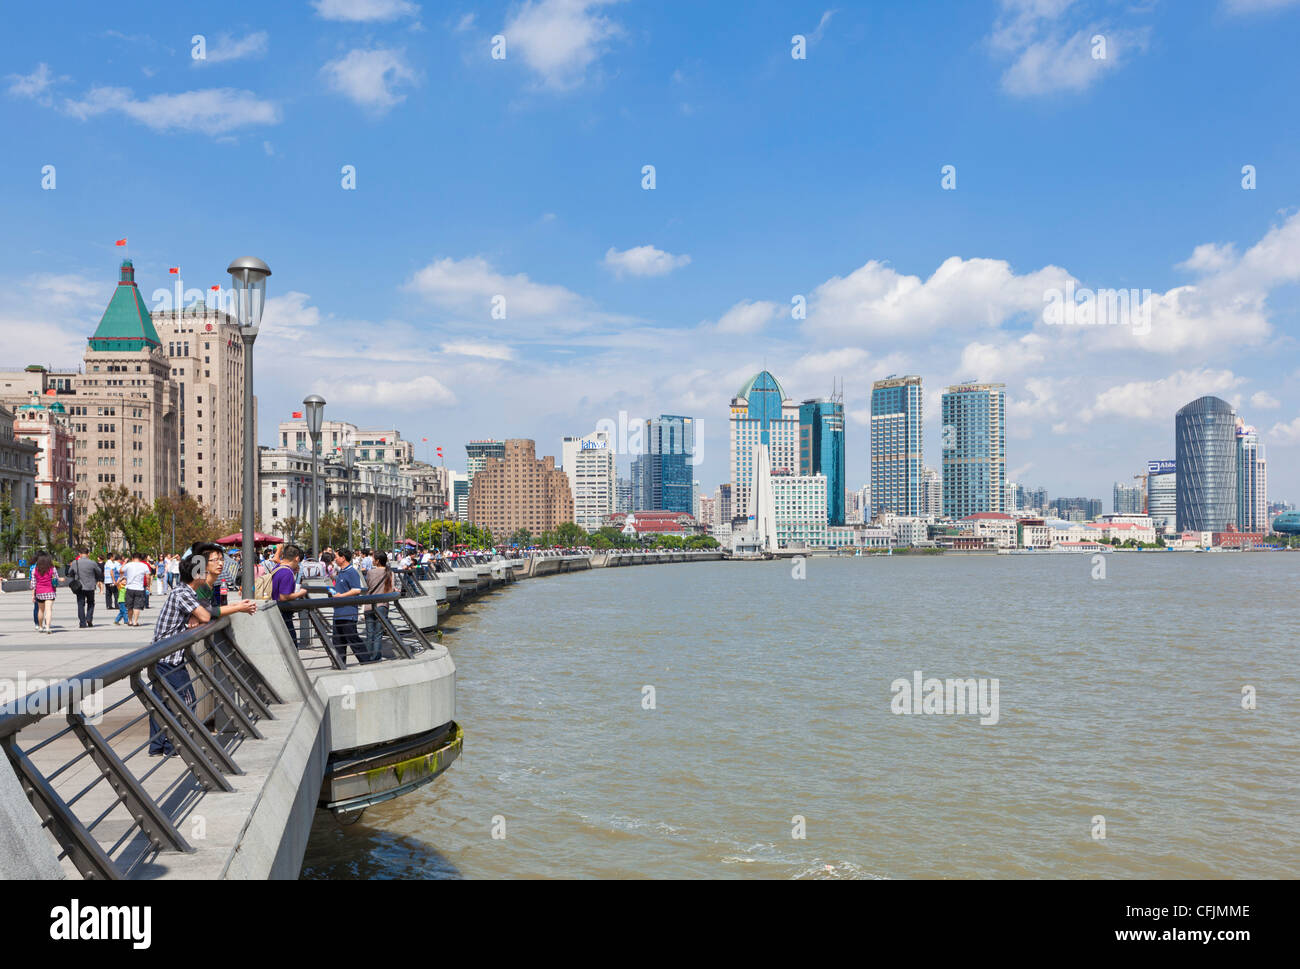 The Bund Colonial Buildings and skyline, Huangpu River, Shanghai, China, Asia - Stock Image